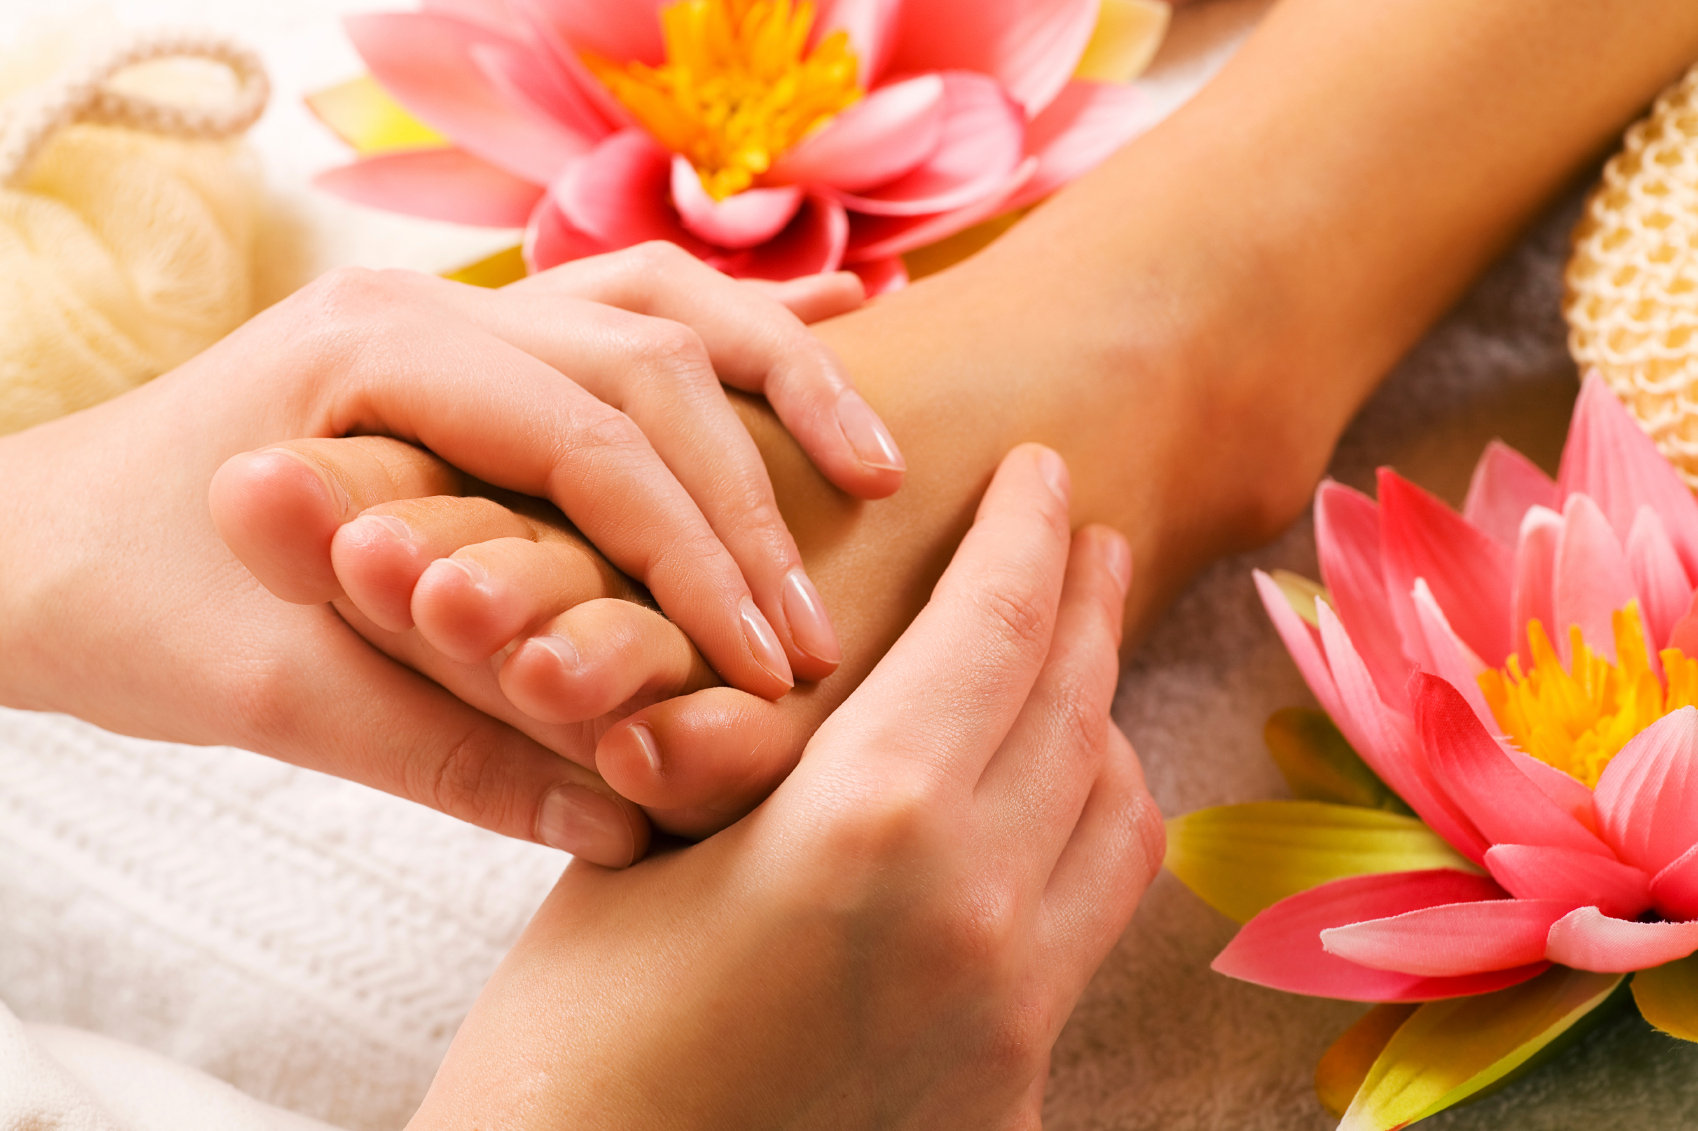 Reflexology with Guided Imagery